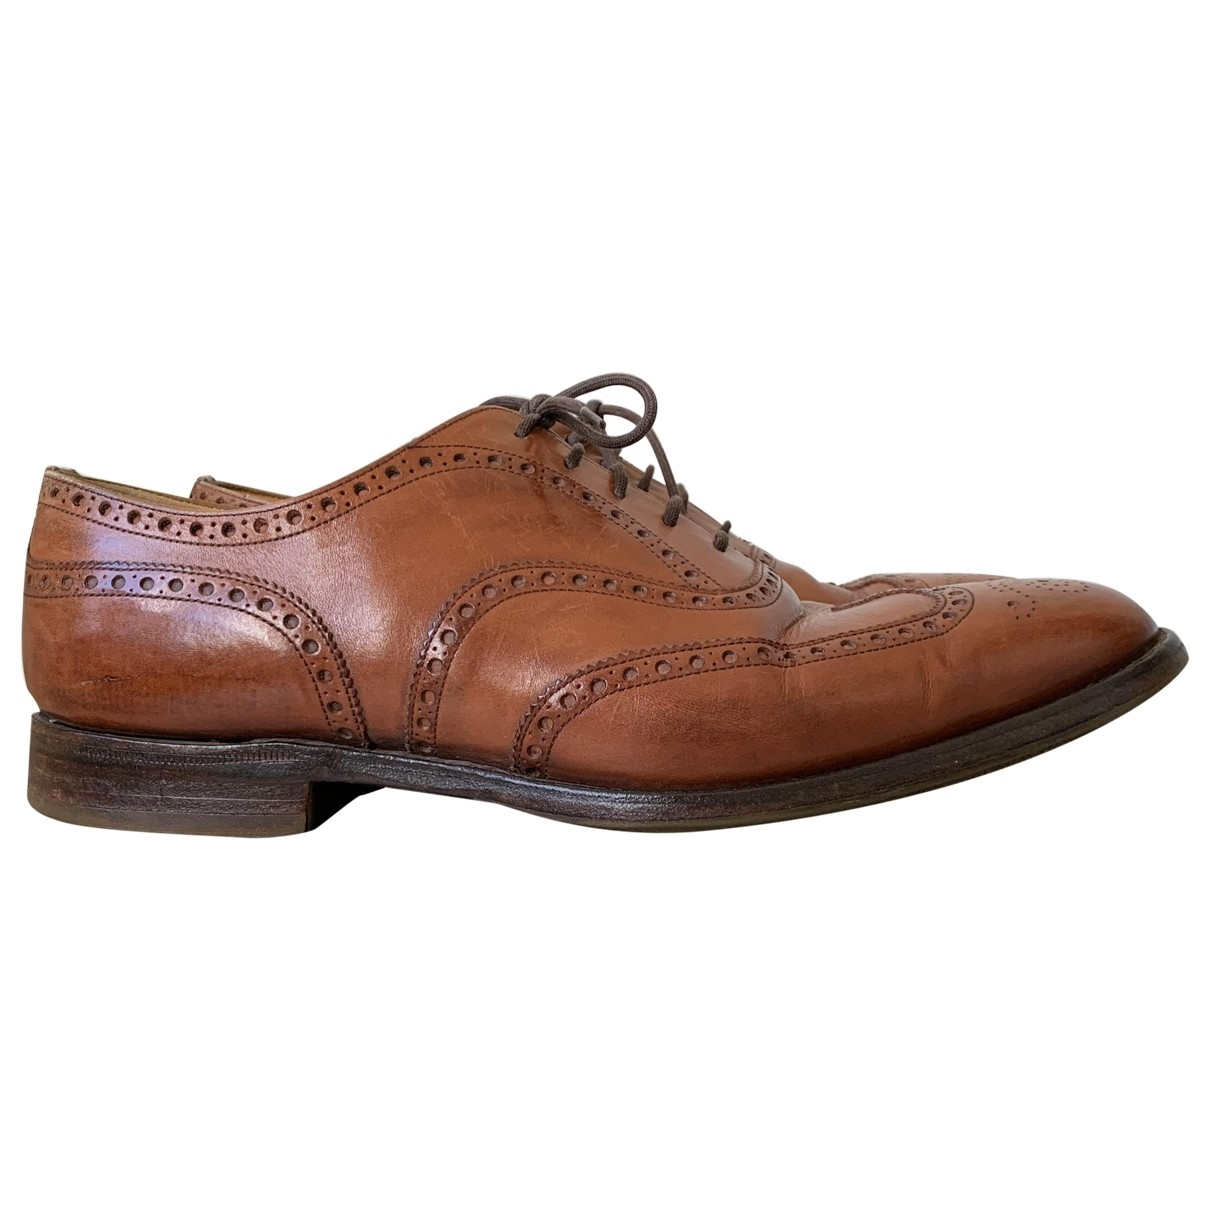 Churchs - Derbies   pour homme en cuir - marron